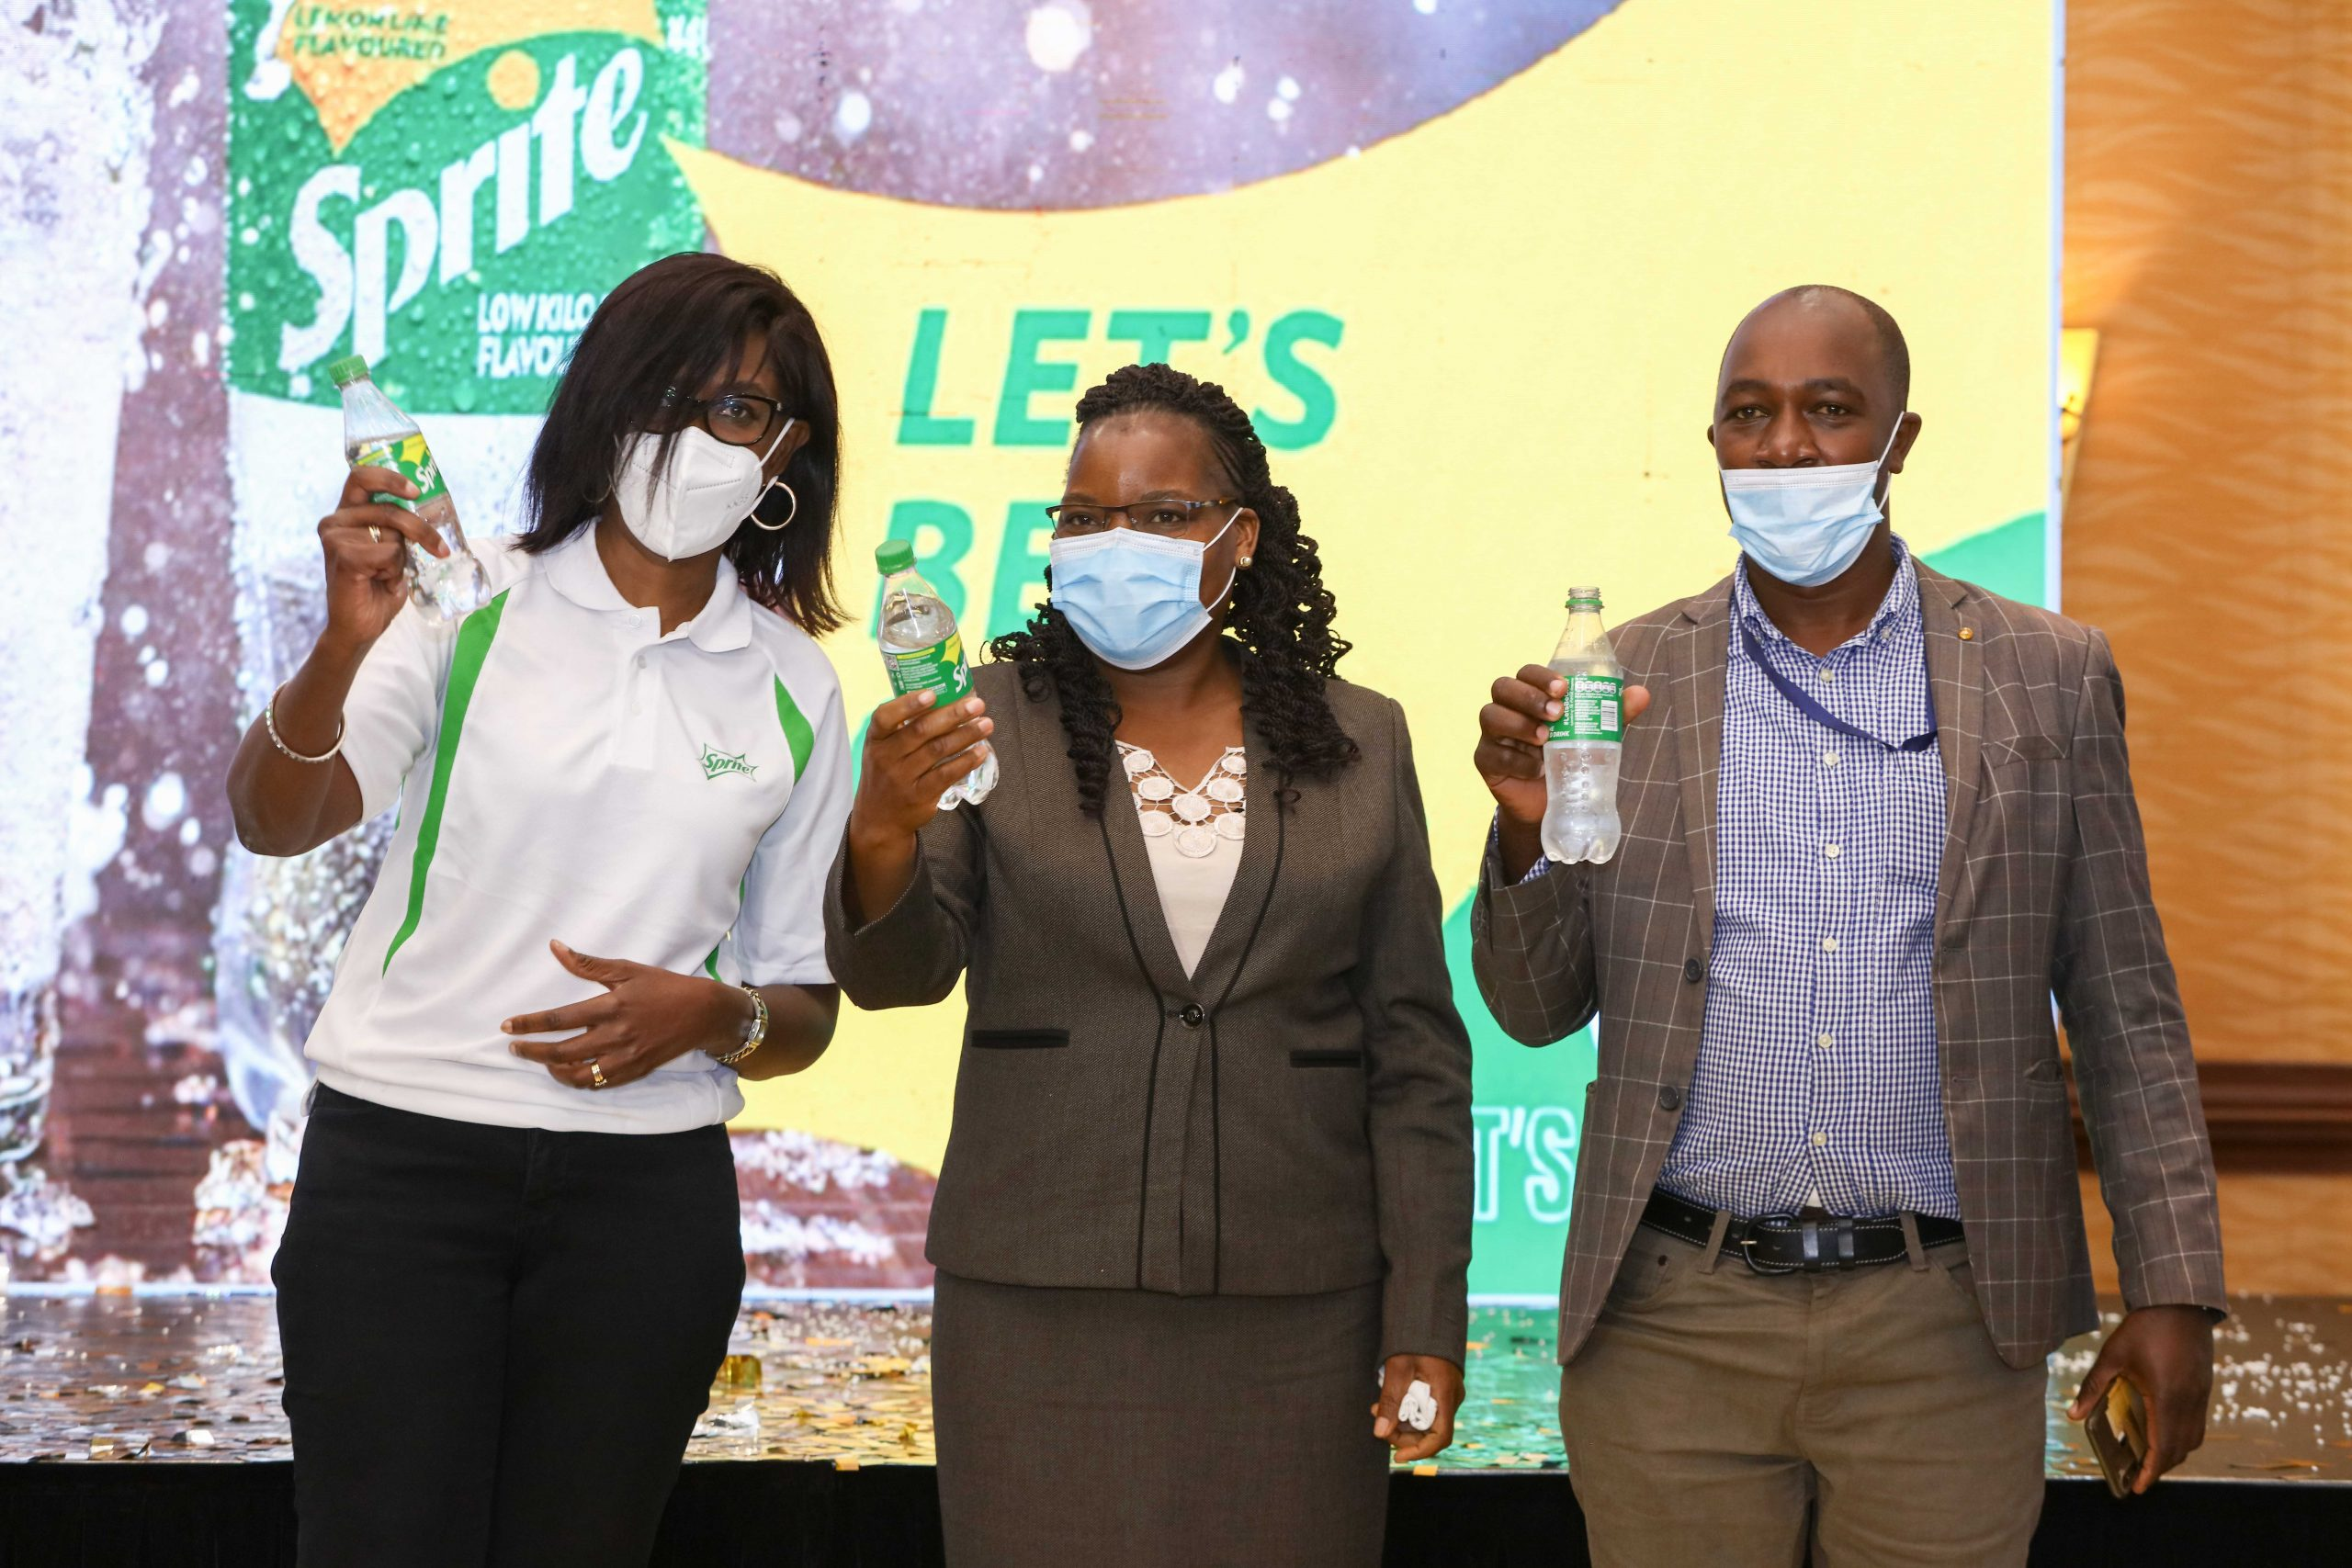 From left, Debra Mallowah, Vice President, Coca-Cola East and Central Africa Franchise, Dr. Catherine Mbaisi, Deputy Director - NEMA and Geoffrey Kuria of Kenya Association of Waste Recyclers pose for a photo during the launch of Sprite's new clear recyclable bottle at Serena Hotel.